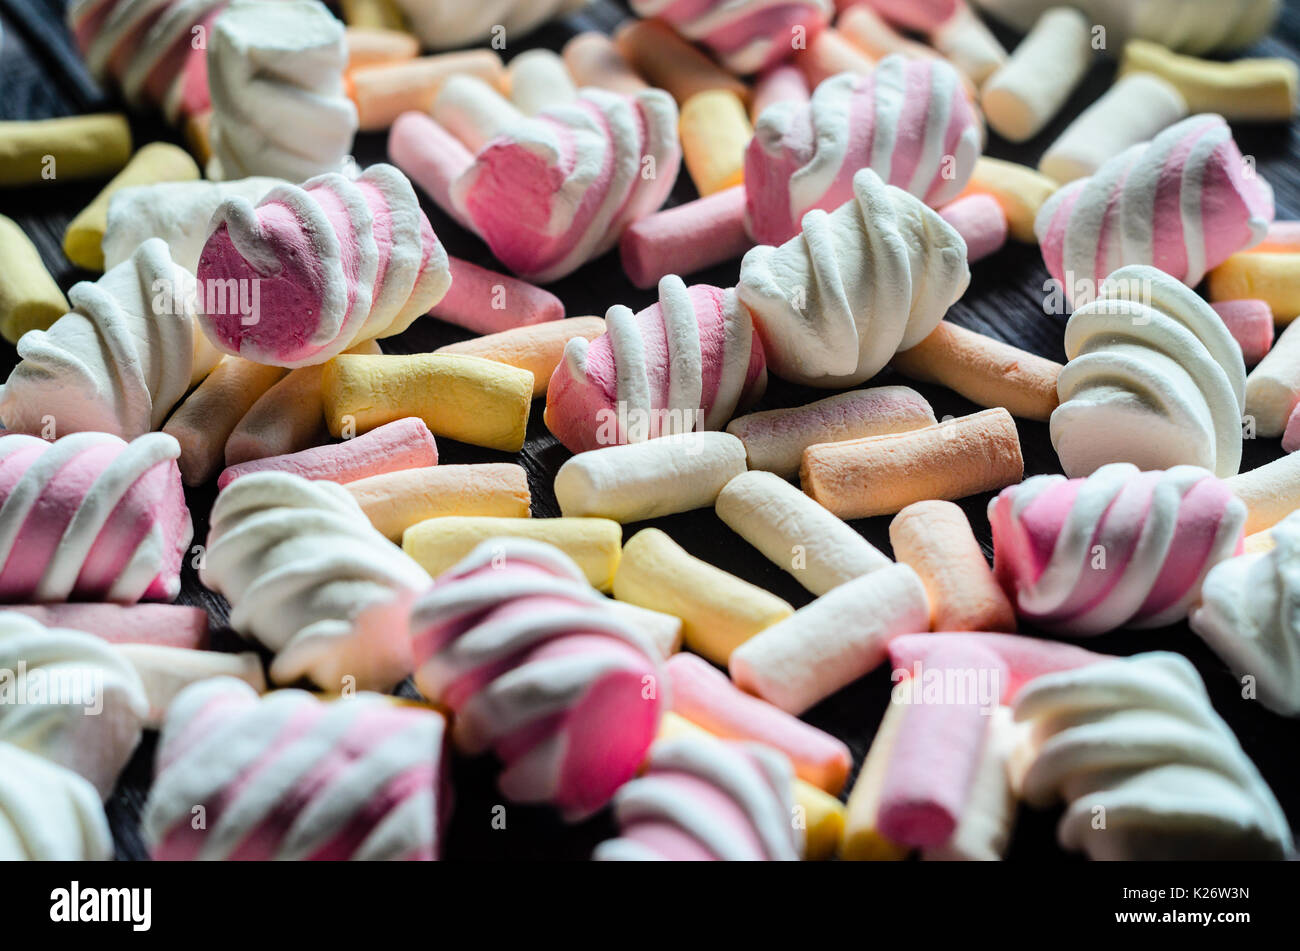 Multicolored Marshmallow Background. Background of multi-colored and different in shape and size of marshmallows. Sweets background - Stock Image